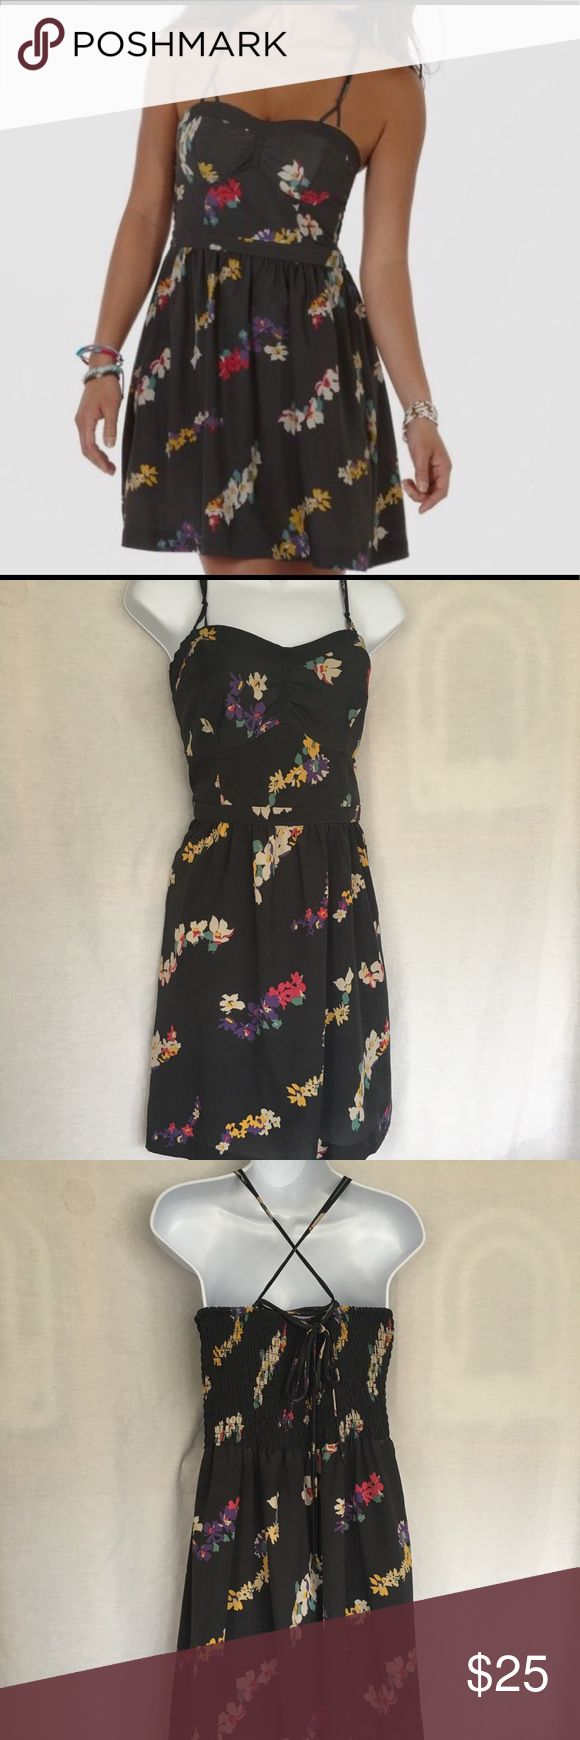 American Eagle Outfitters gray floral dress American Eagle Outfitters gray floral dress with elastic back and pockets American Eagle Outfitters Dresses Strapless #americaneagleoutfitters